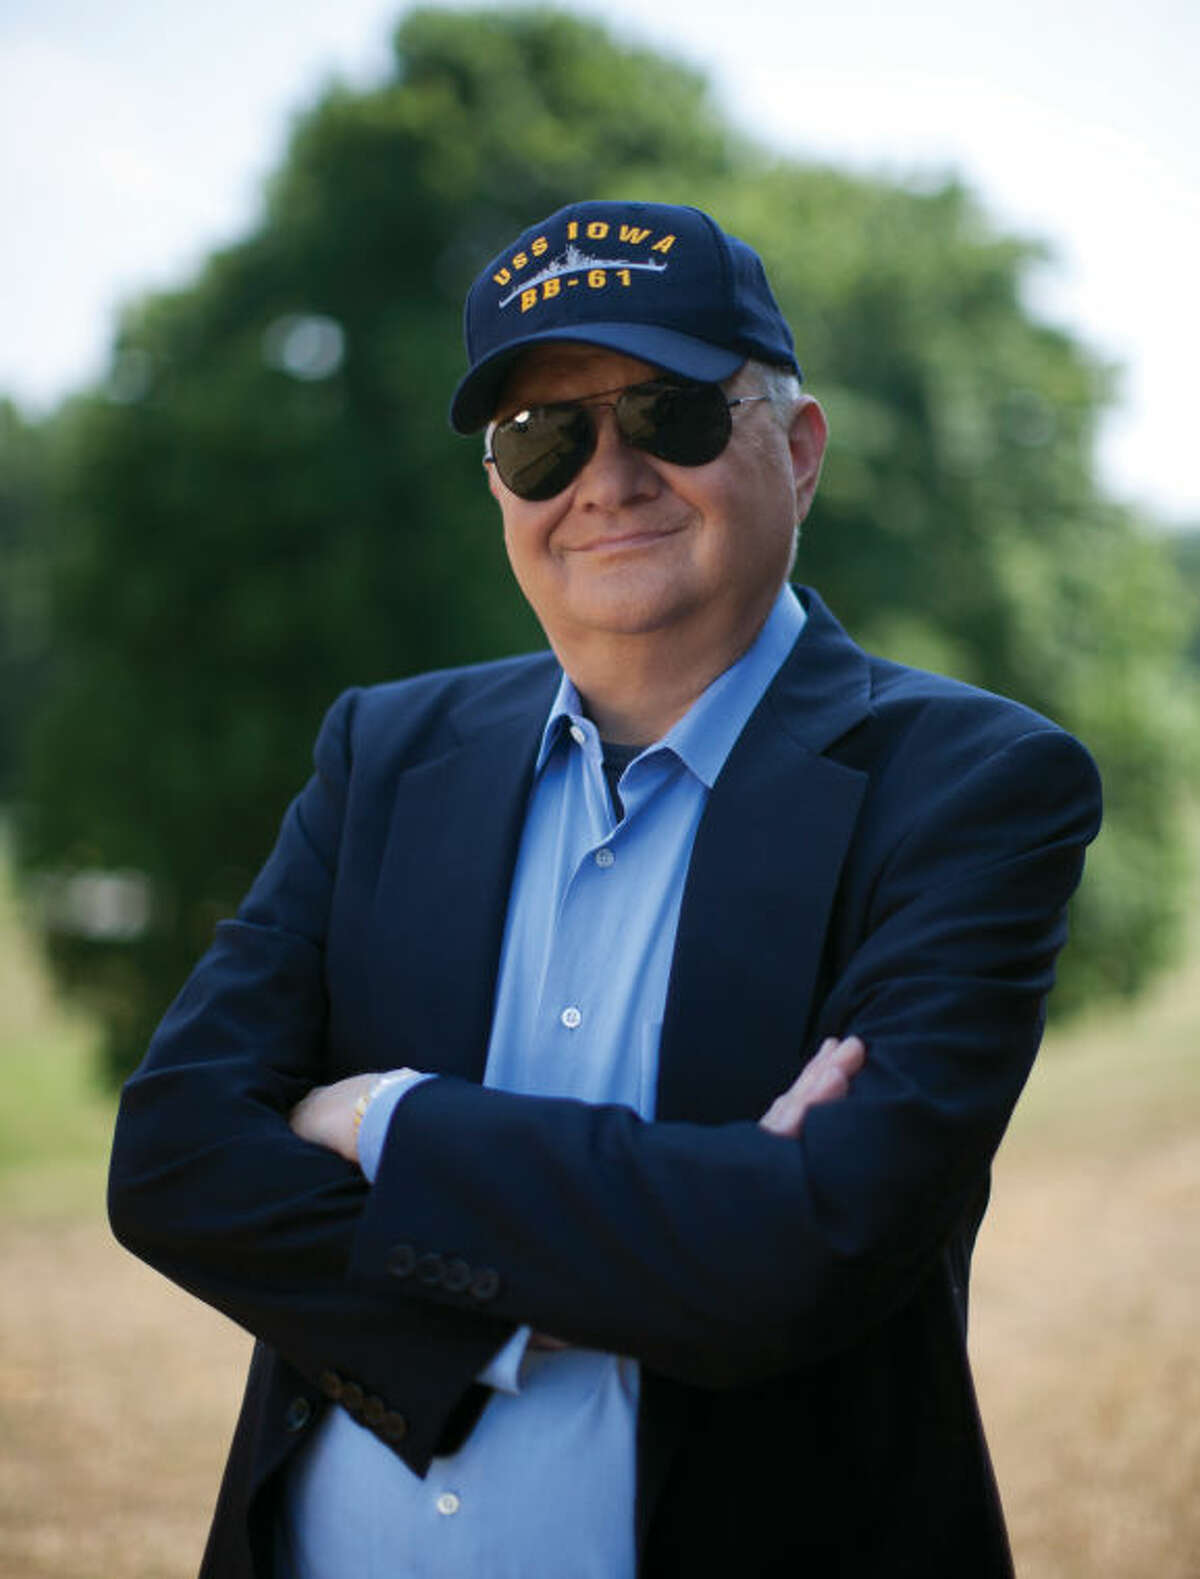 This 2010 image released by G.P. Putnam Sons shows author Tom Clancy in Huntingtown, Md. Clancy, the bestselling author of